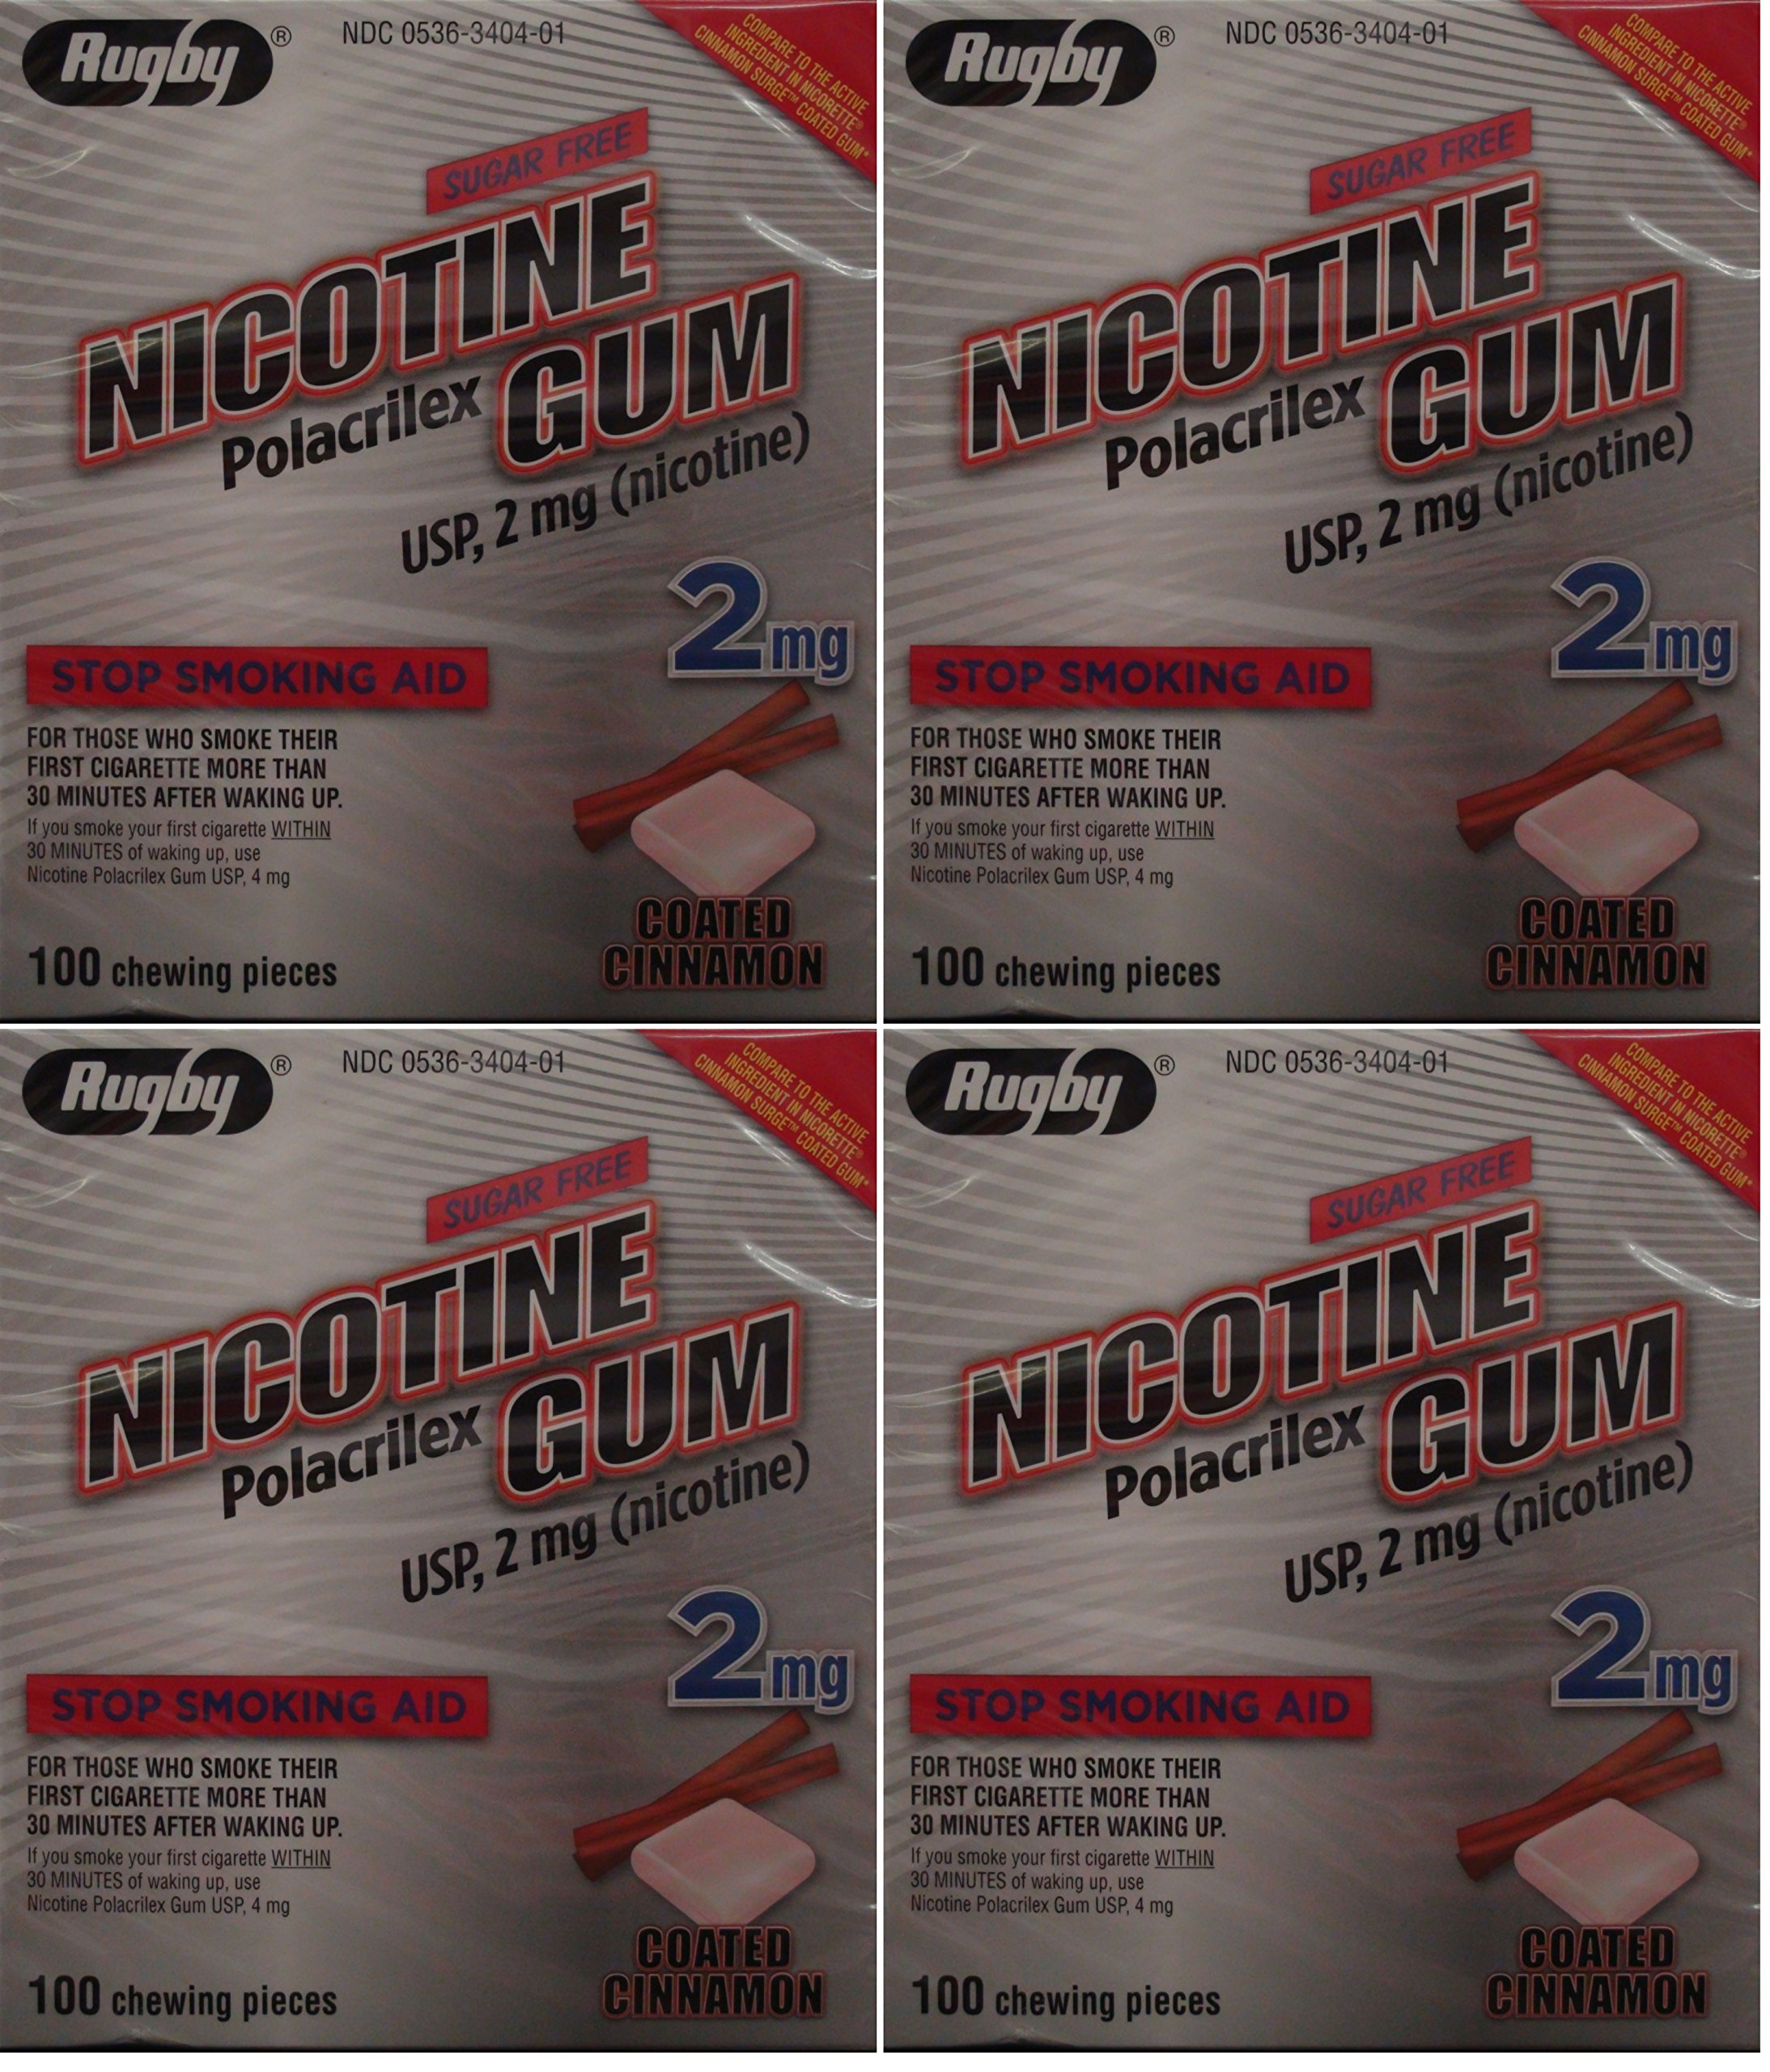 Nicotine Gum 2mg Sugar Free Coated Cinnamon Generic for Nicorette 100 Pieces per Box Pack of 4 Total 400 Pieces